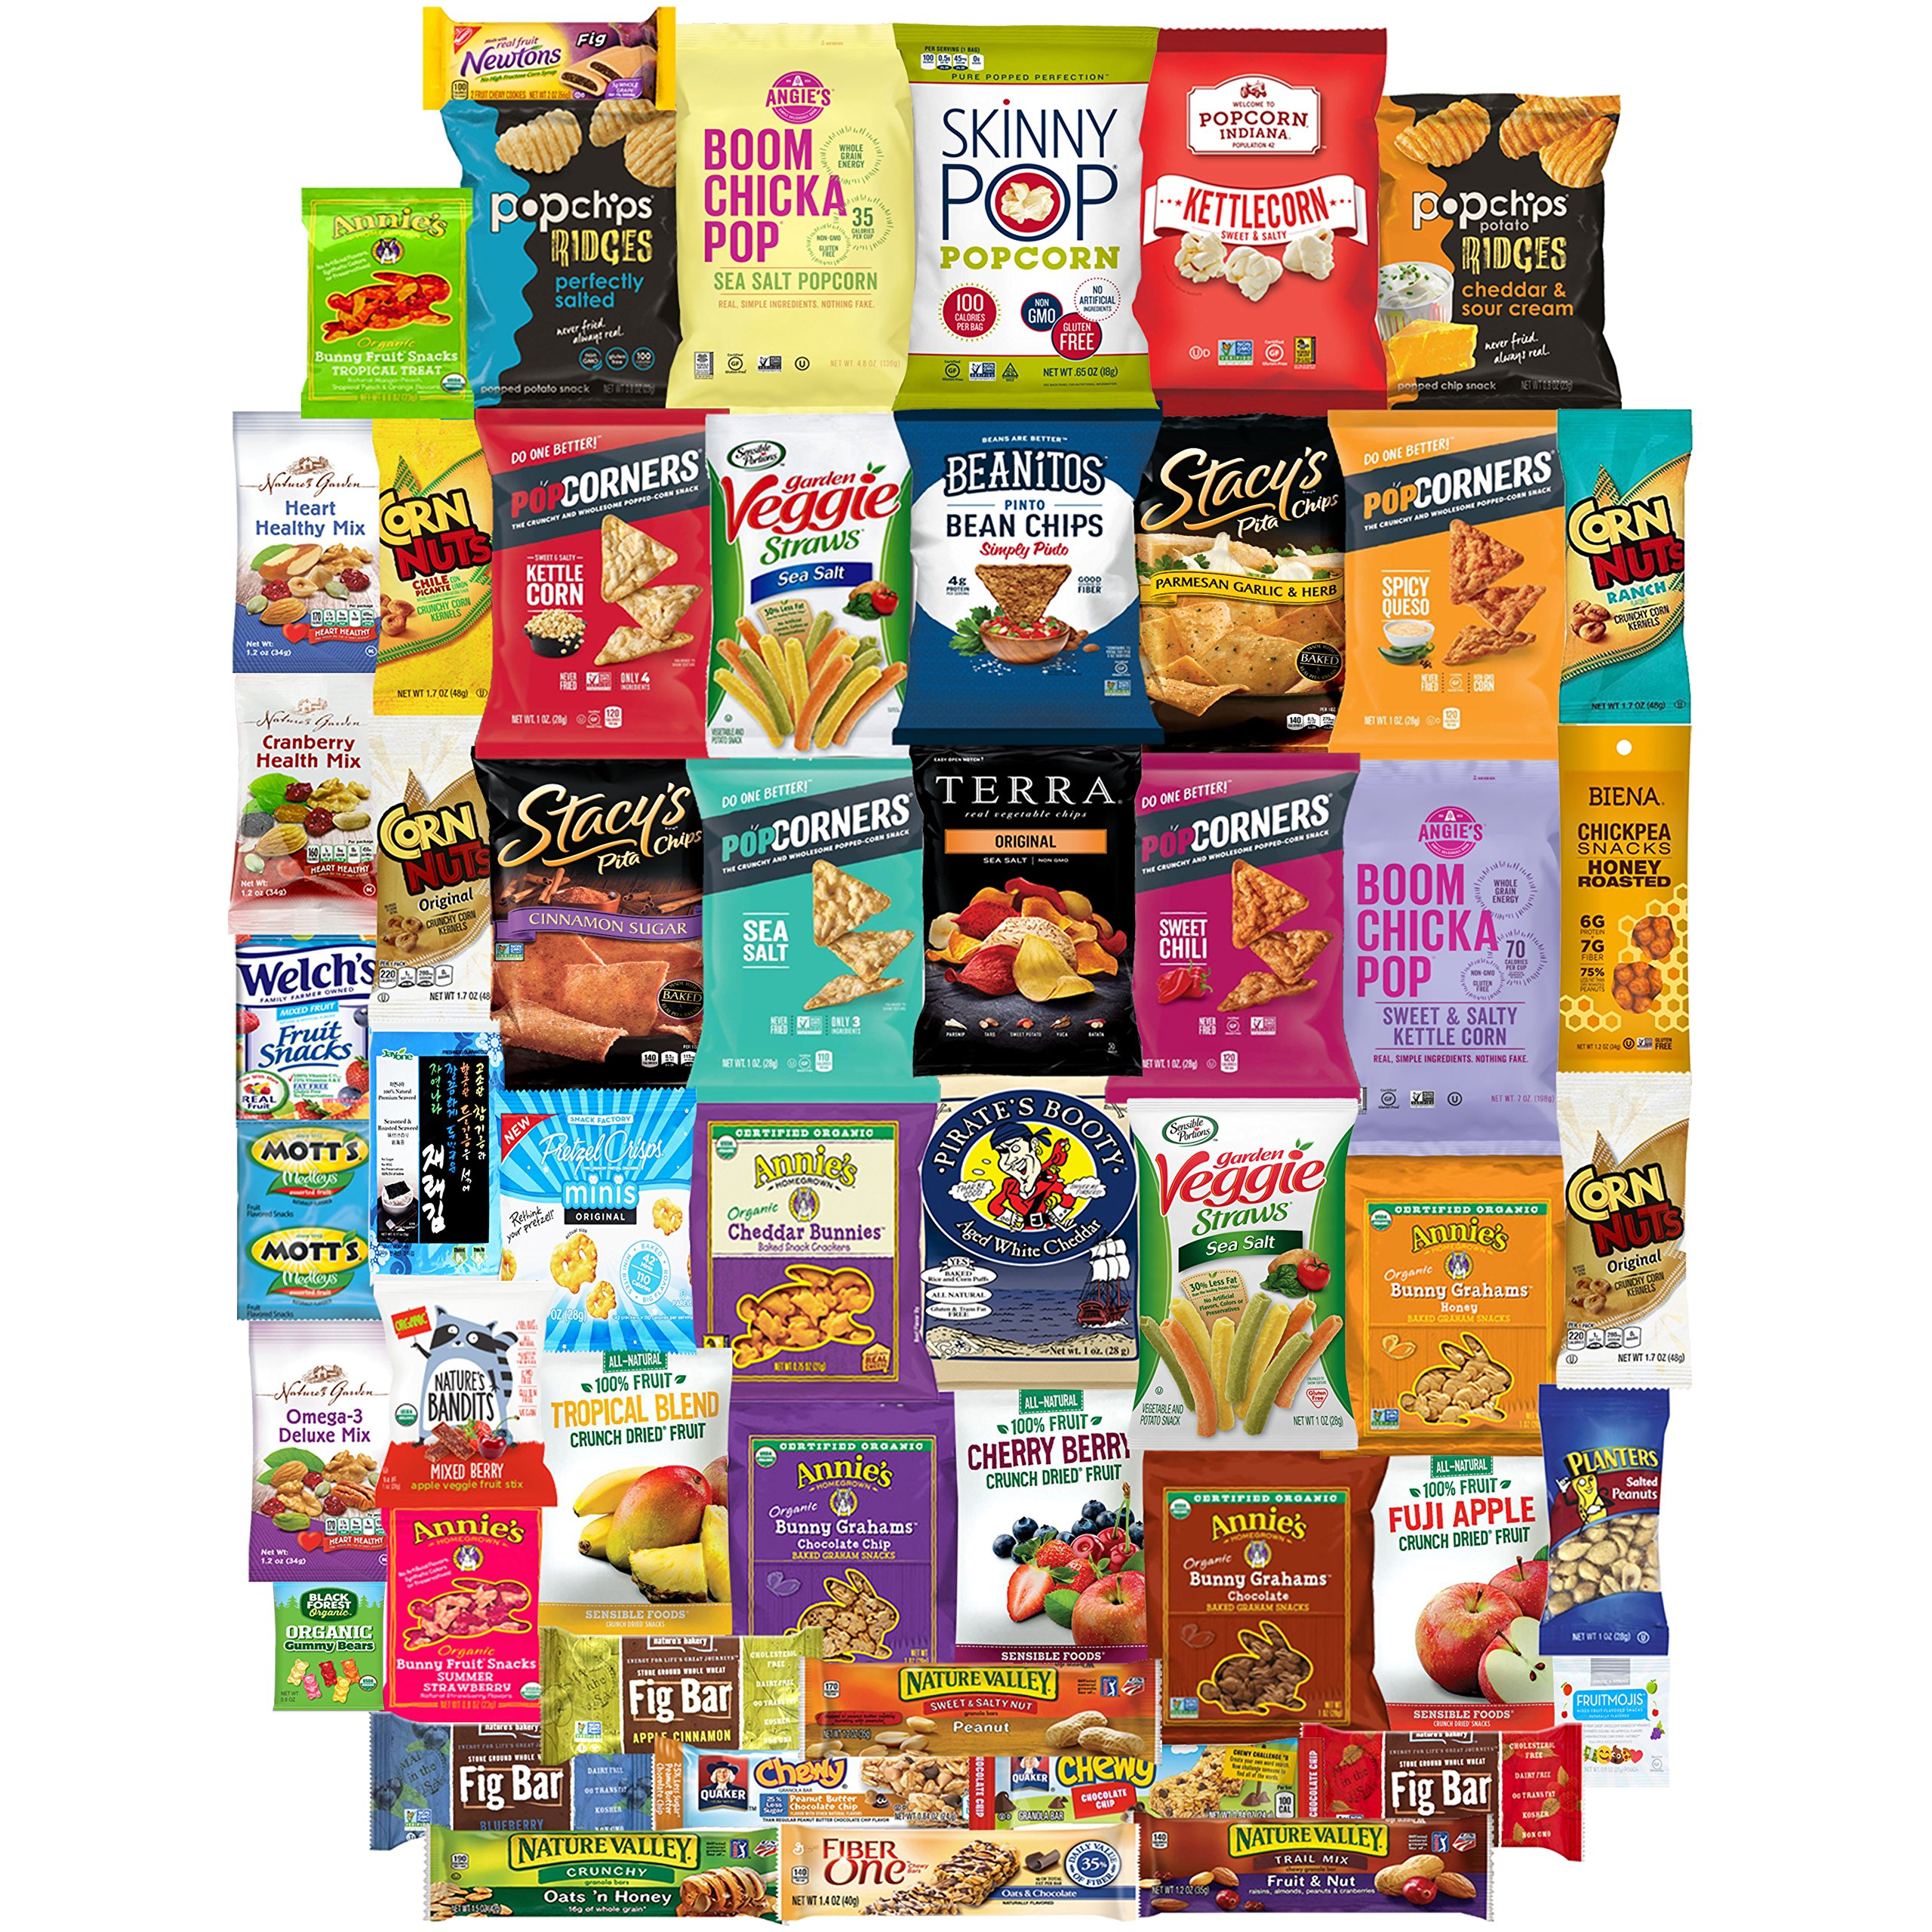 Healthy Snacks Care Package, Many Different Treats To Sample, Chips, Popcorn, Nuts and Gummy Items (50 Count)